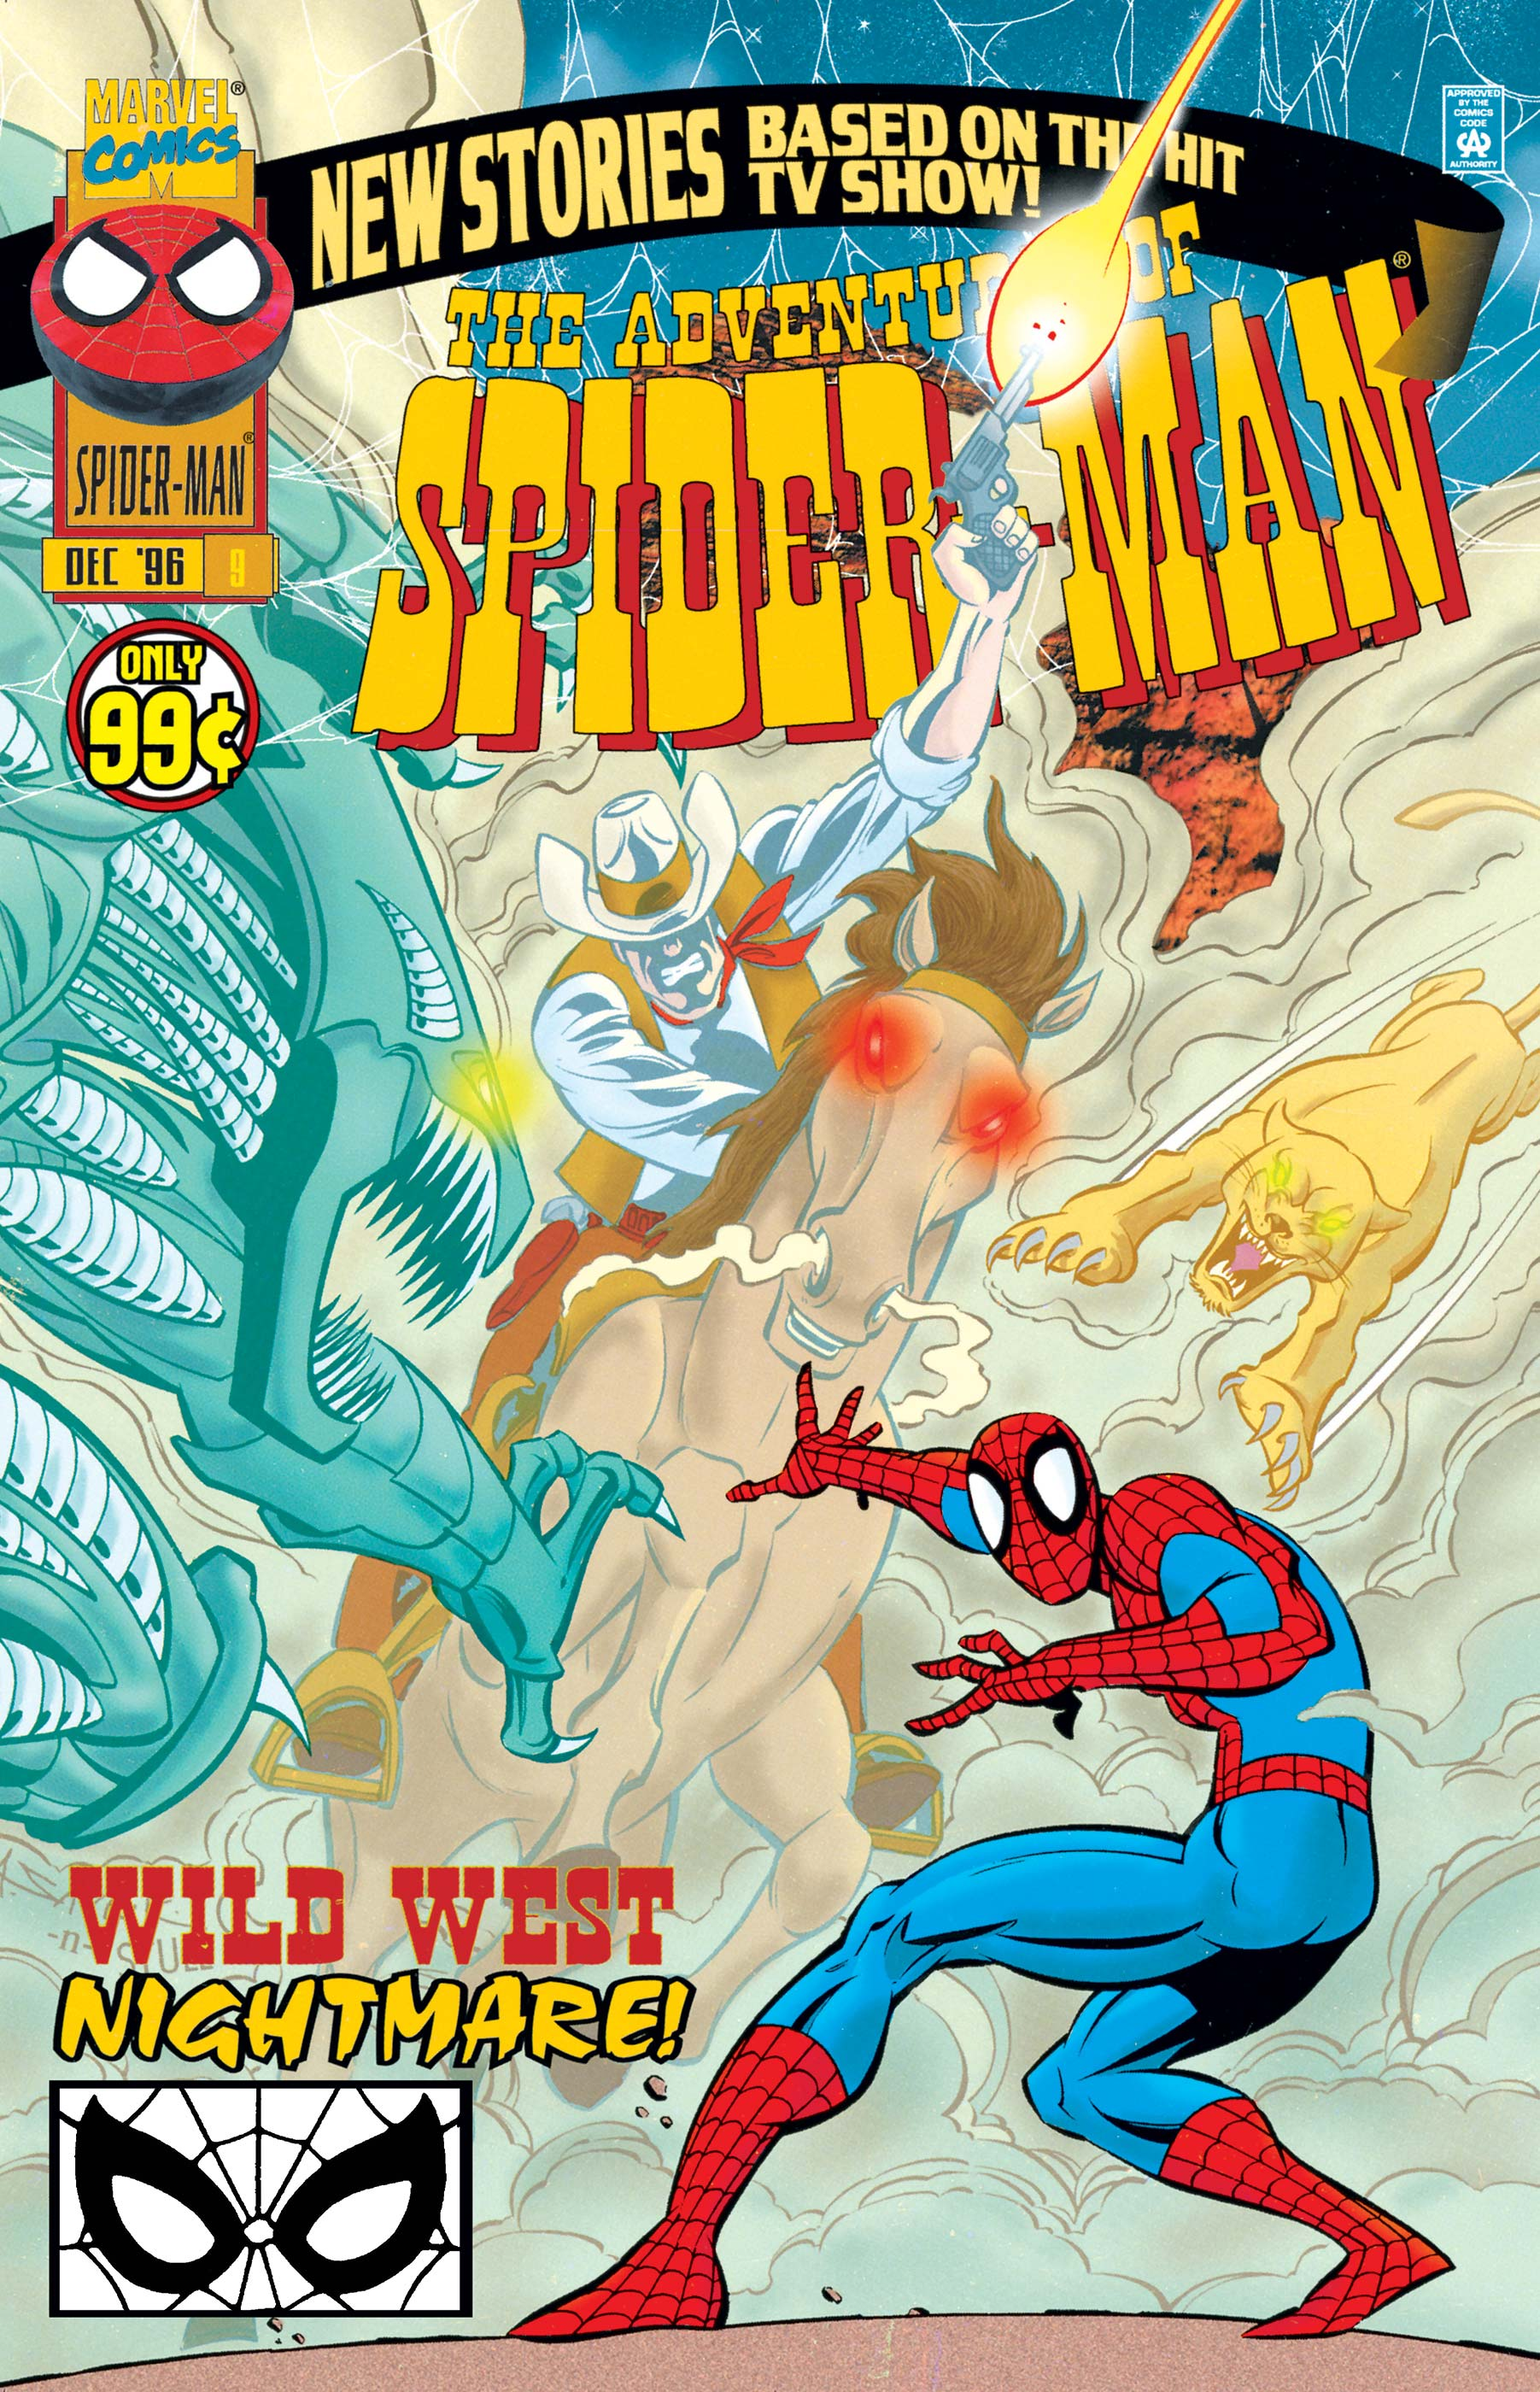 Adventures of Spider-Man (1996) #9